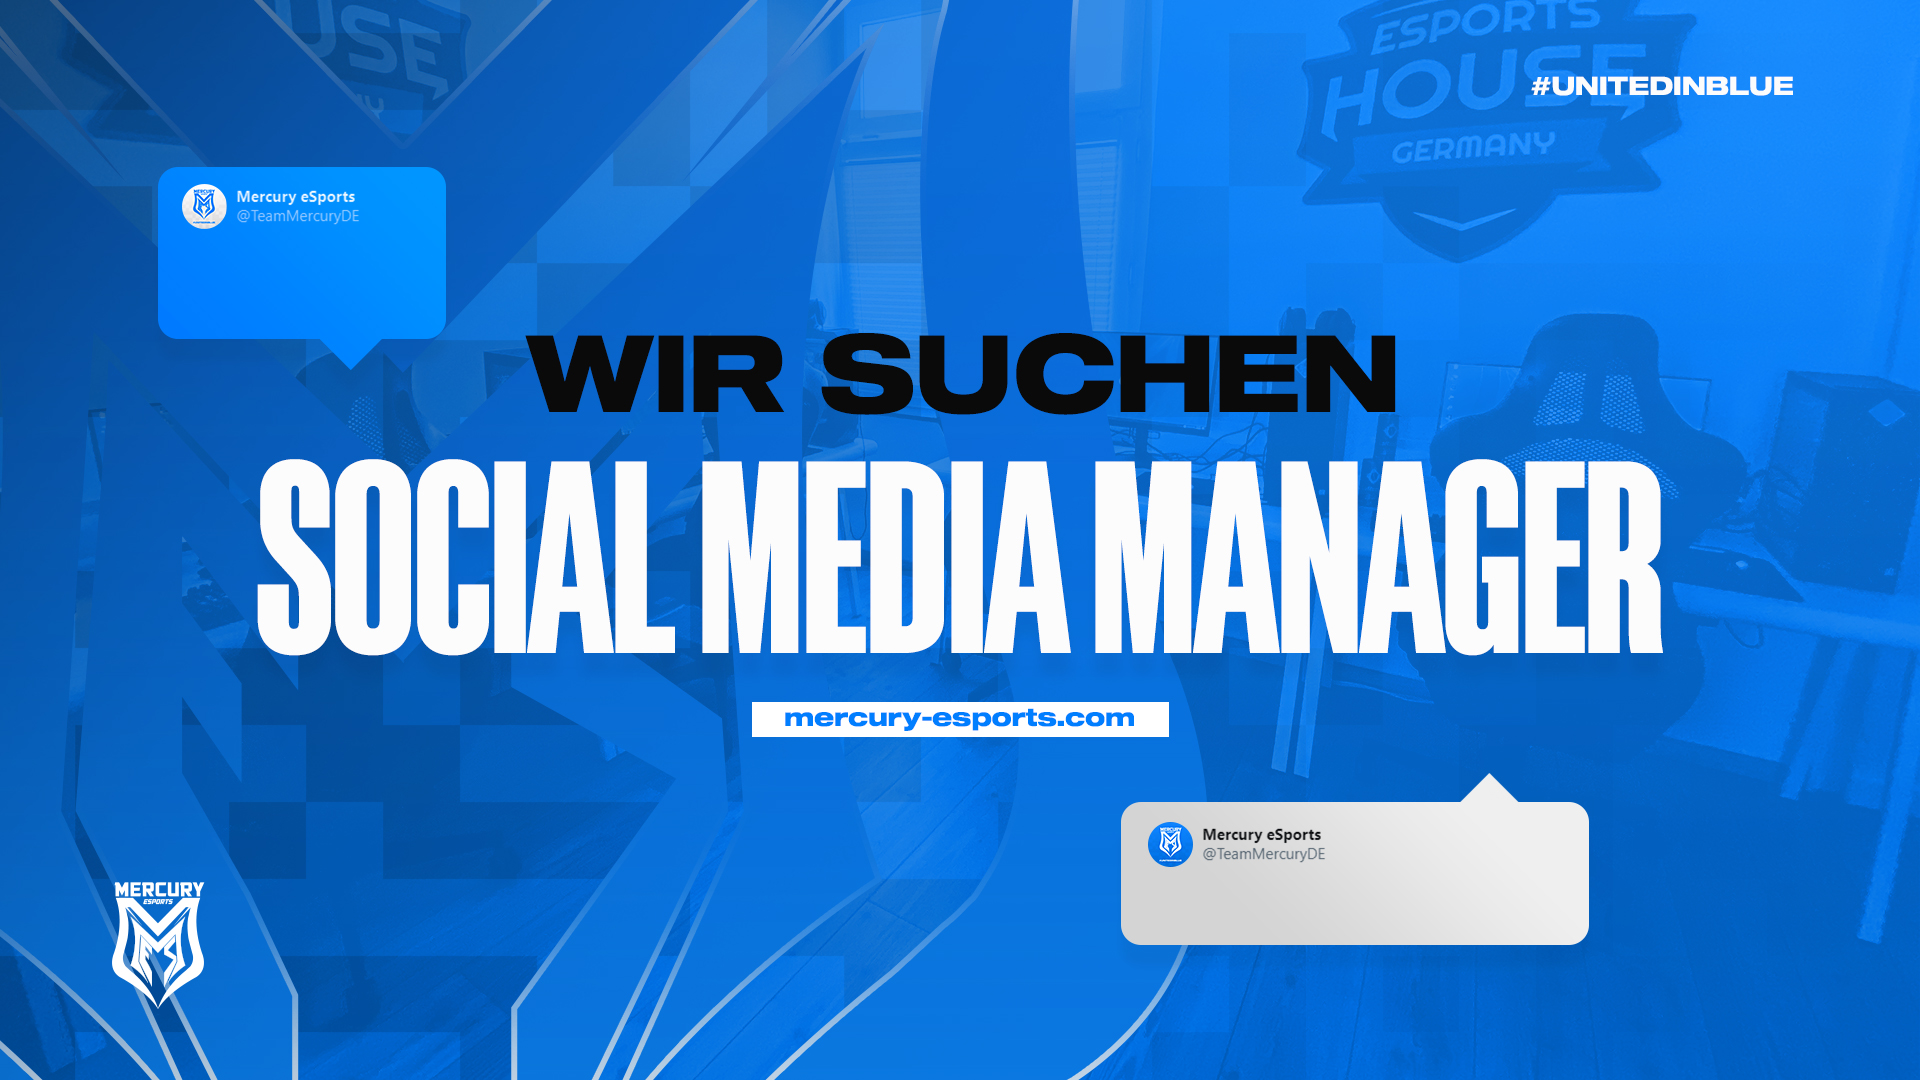 Mercury eSports sucht Social Media Manager